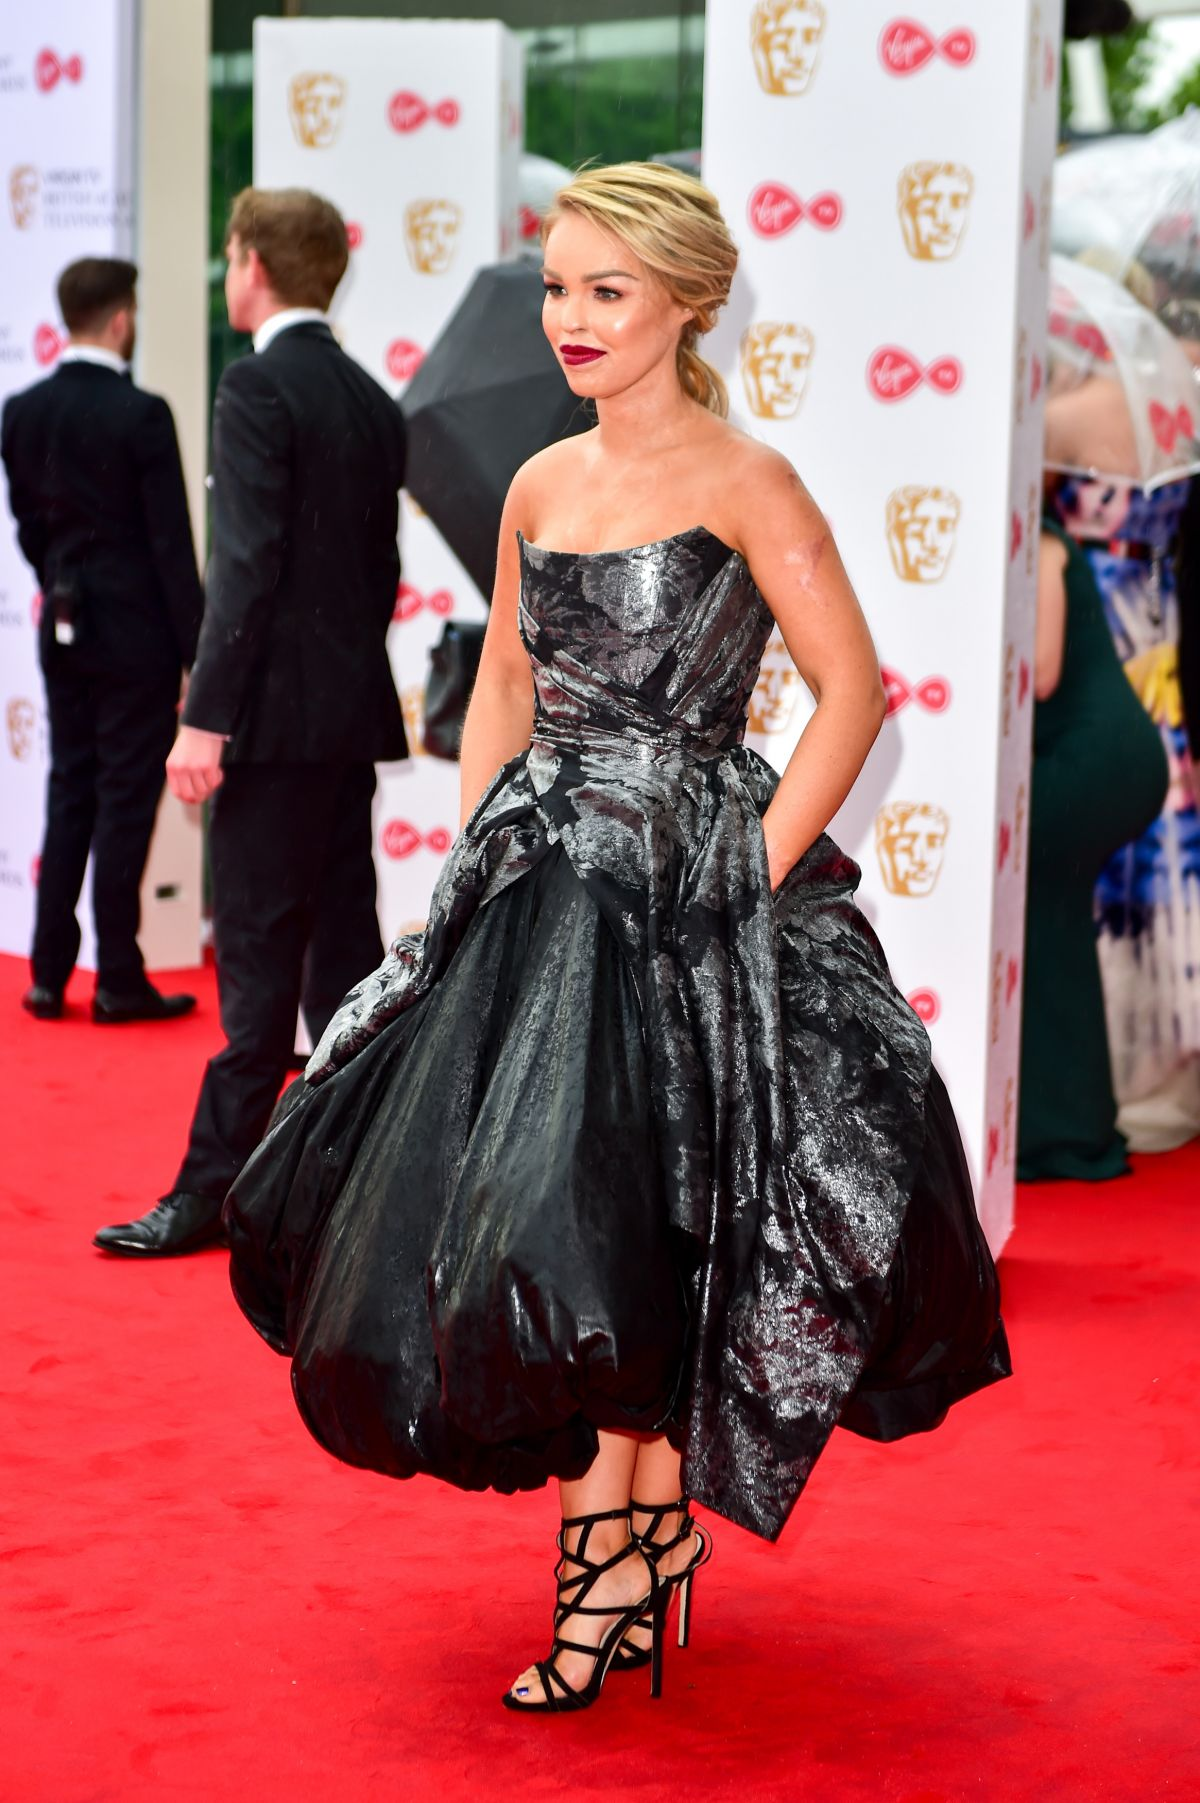 KATIE PIPER At 2017 British Academy Television Awards In